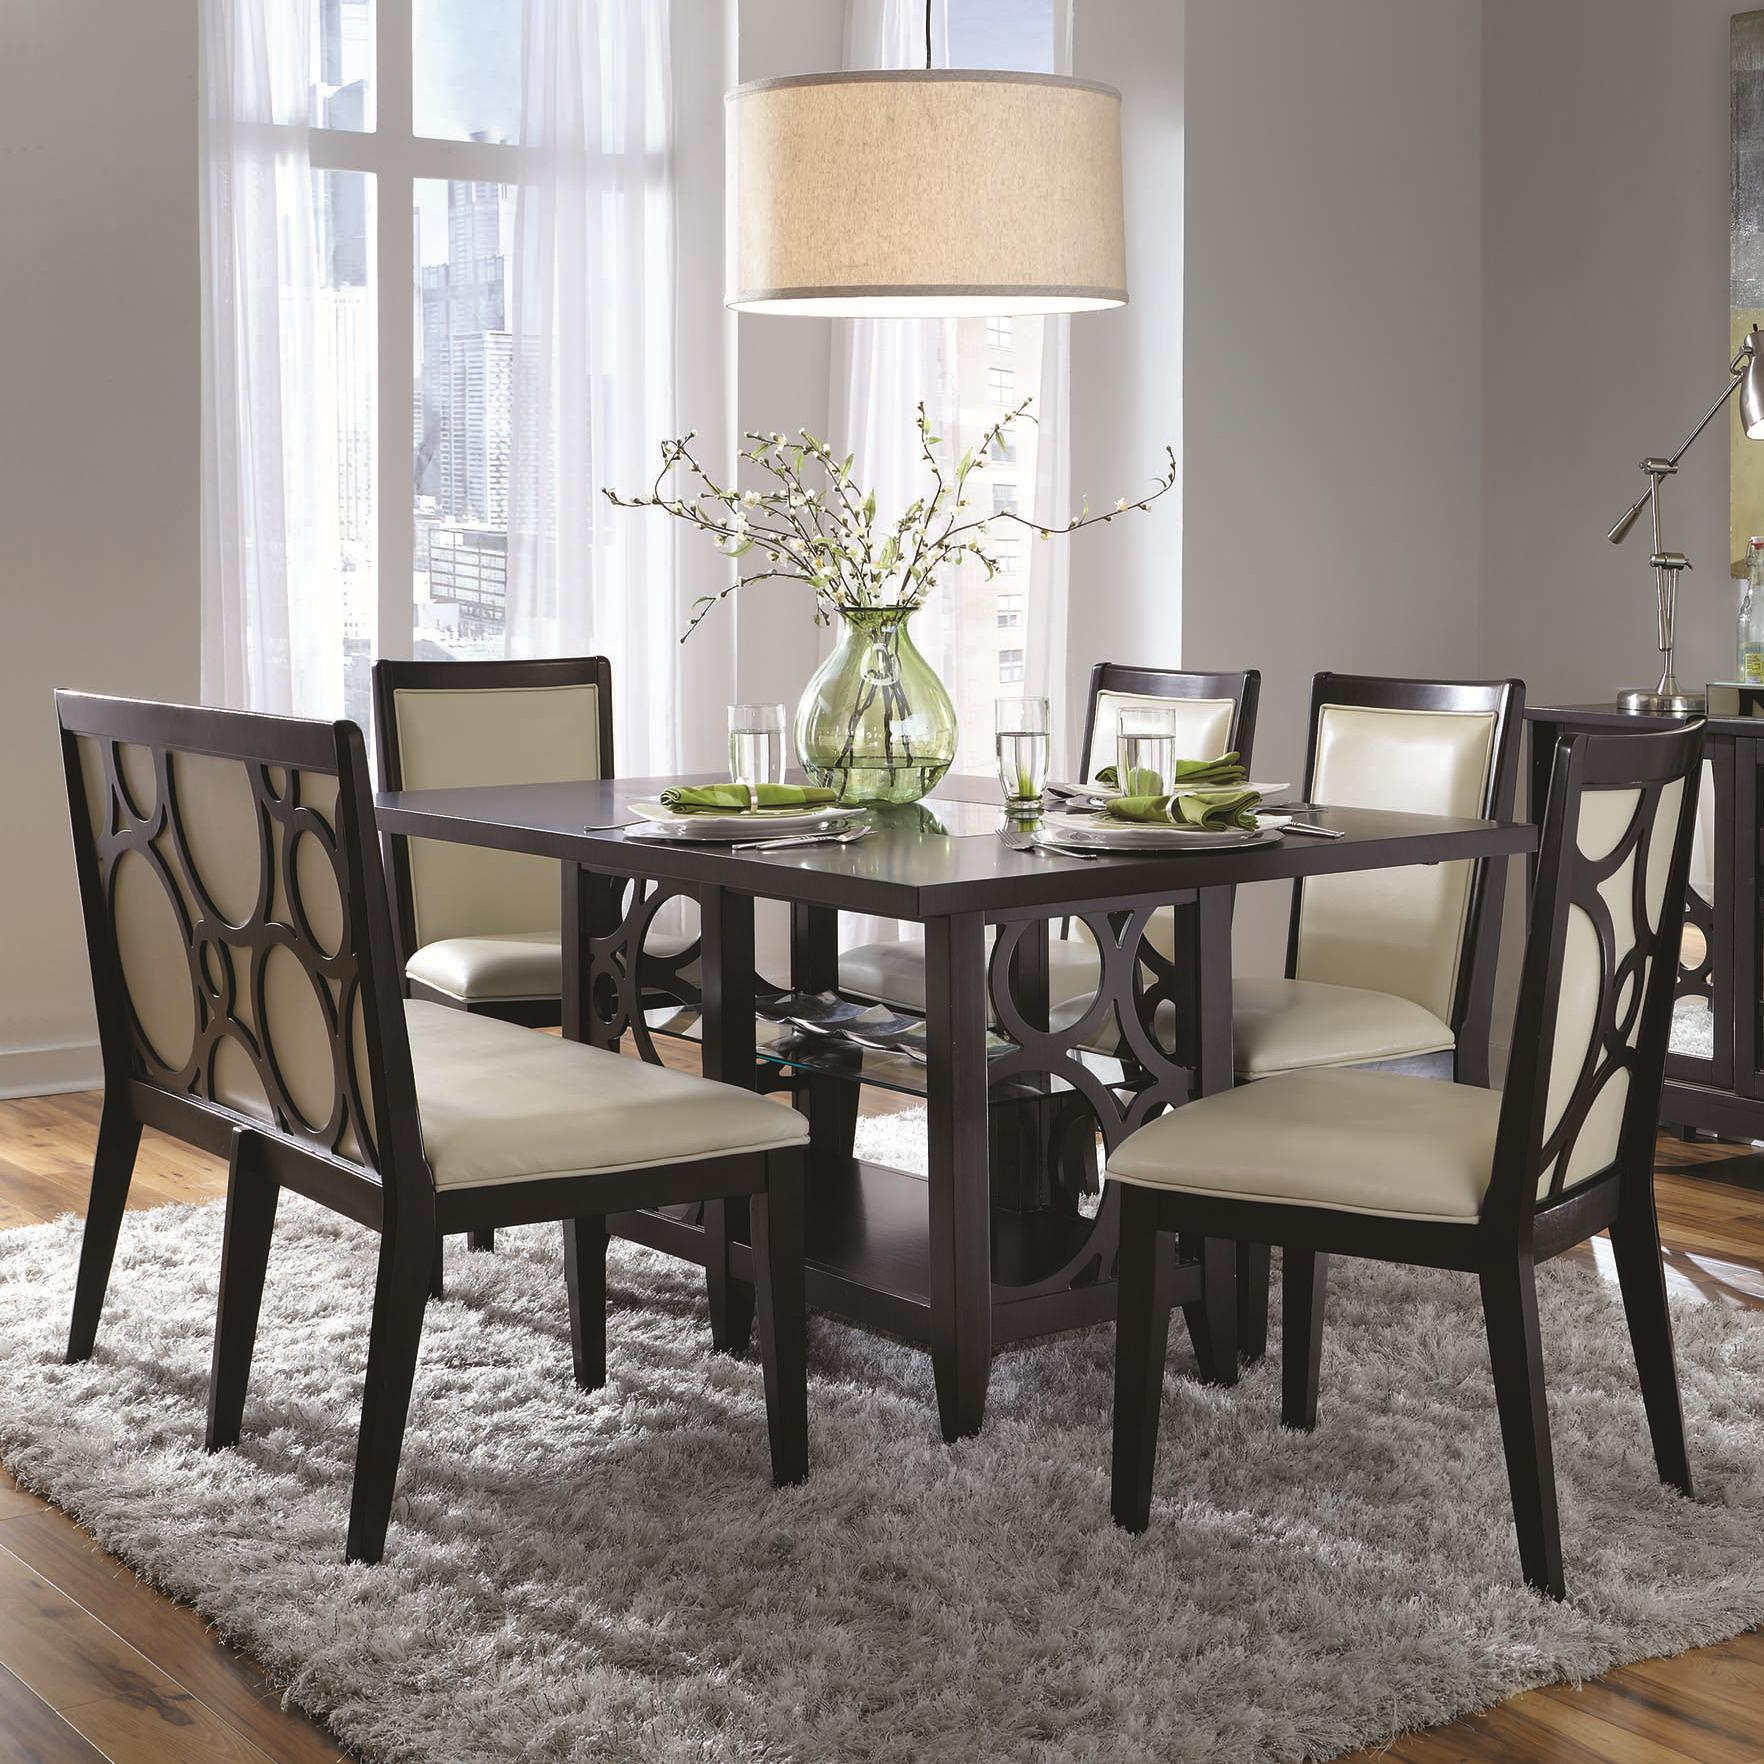 Najarian Planet 6 Pc Dining Table and Chairs Set - Item Number: Recttable+4XCRPLASC+CRPLASB